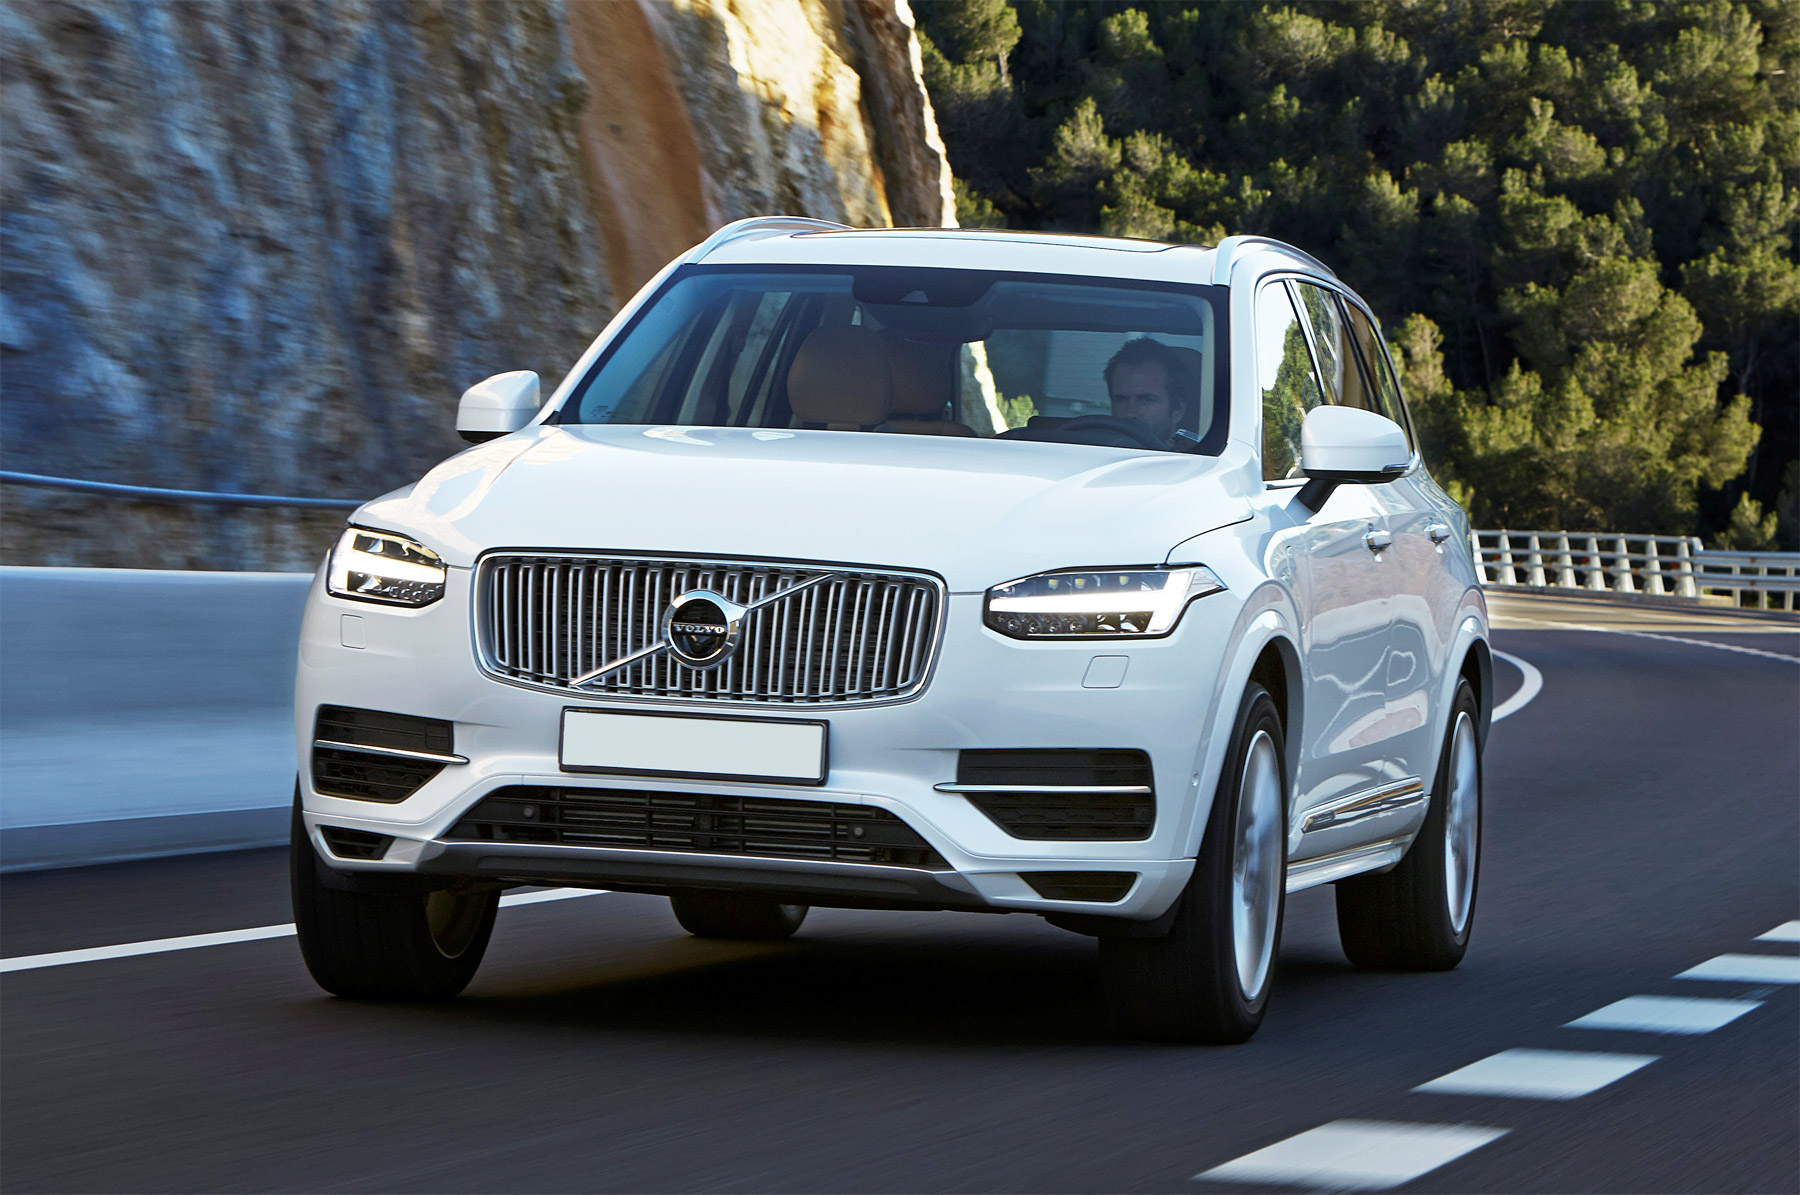 Road Test On Volvo's Award-Winning XC90 T8 Plug-in Hybrid 5